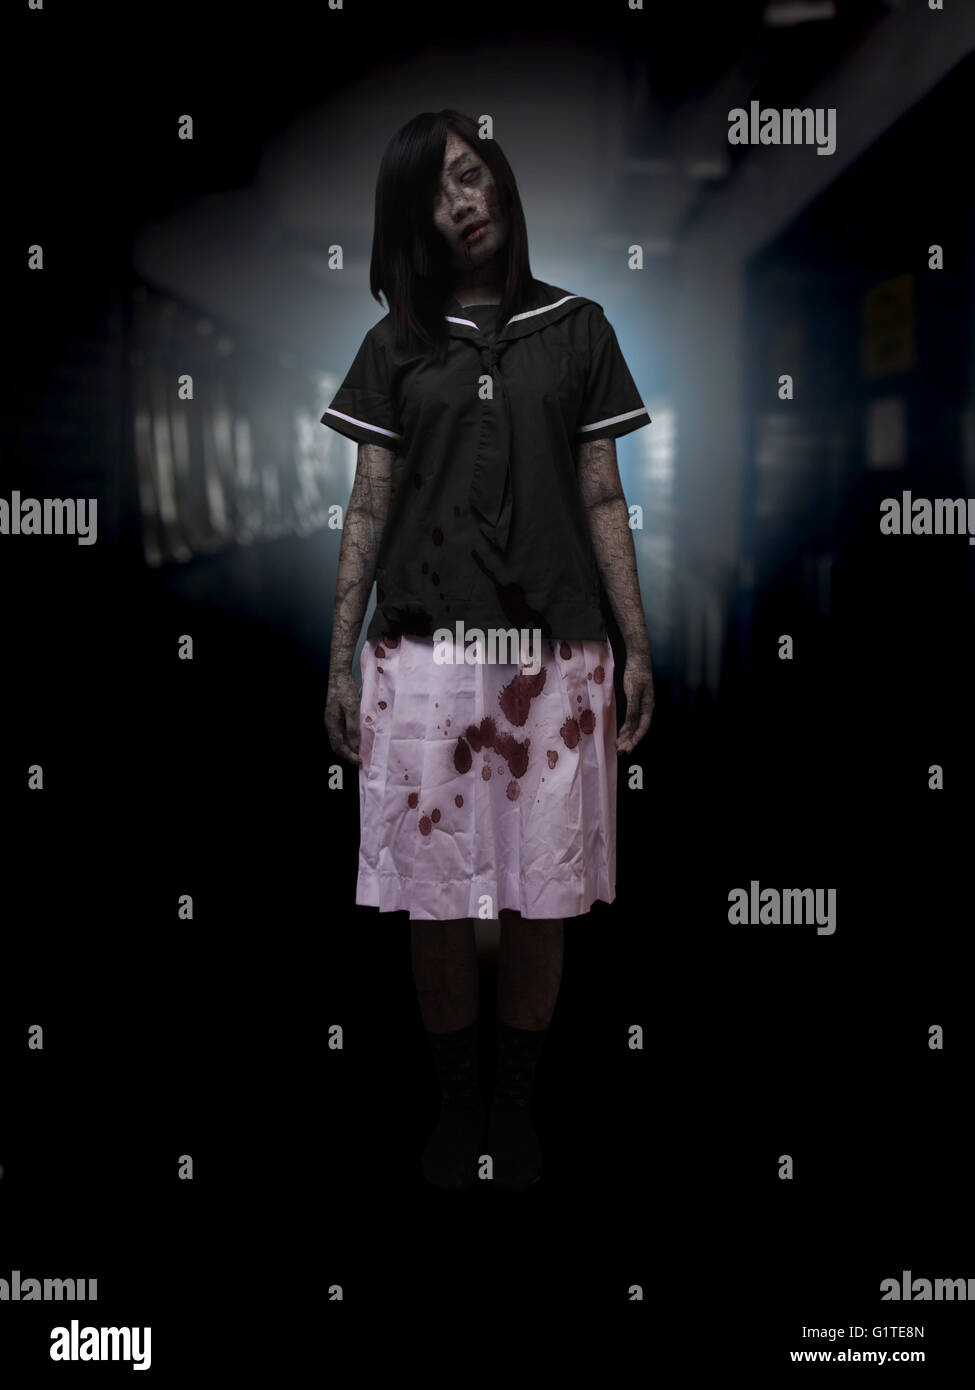 a675350596b a girl ghost ghost with blood female dead body red black anger chinese ghost  story injury blood wound eye dead hung on campus